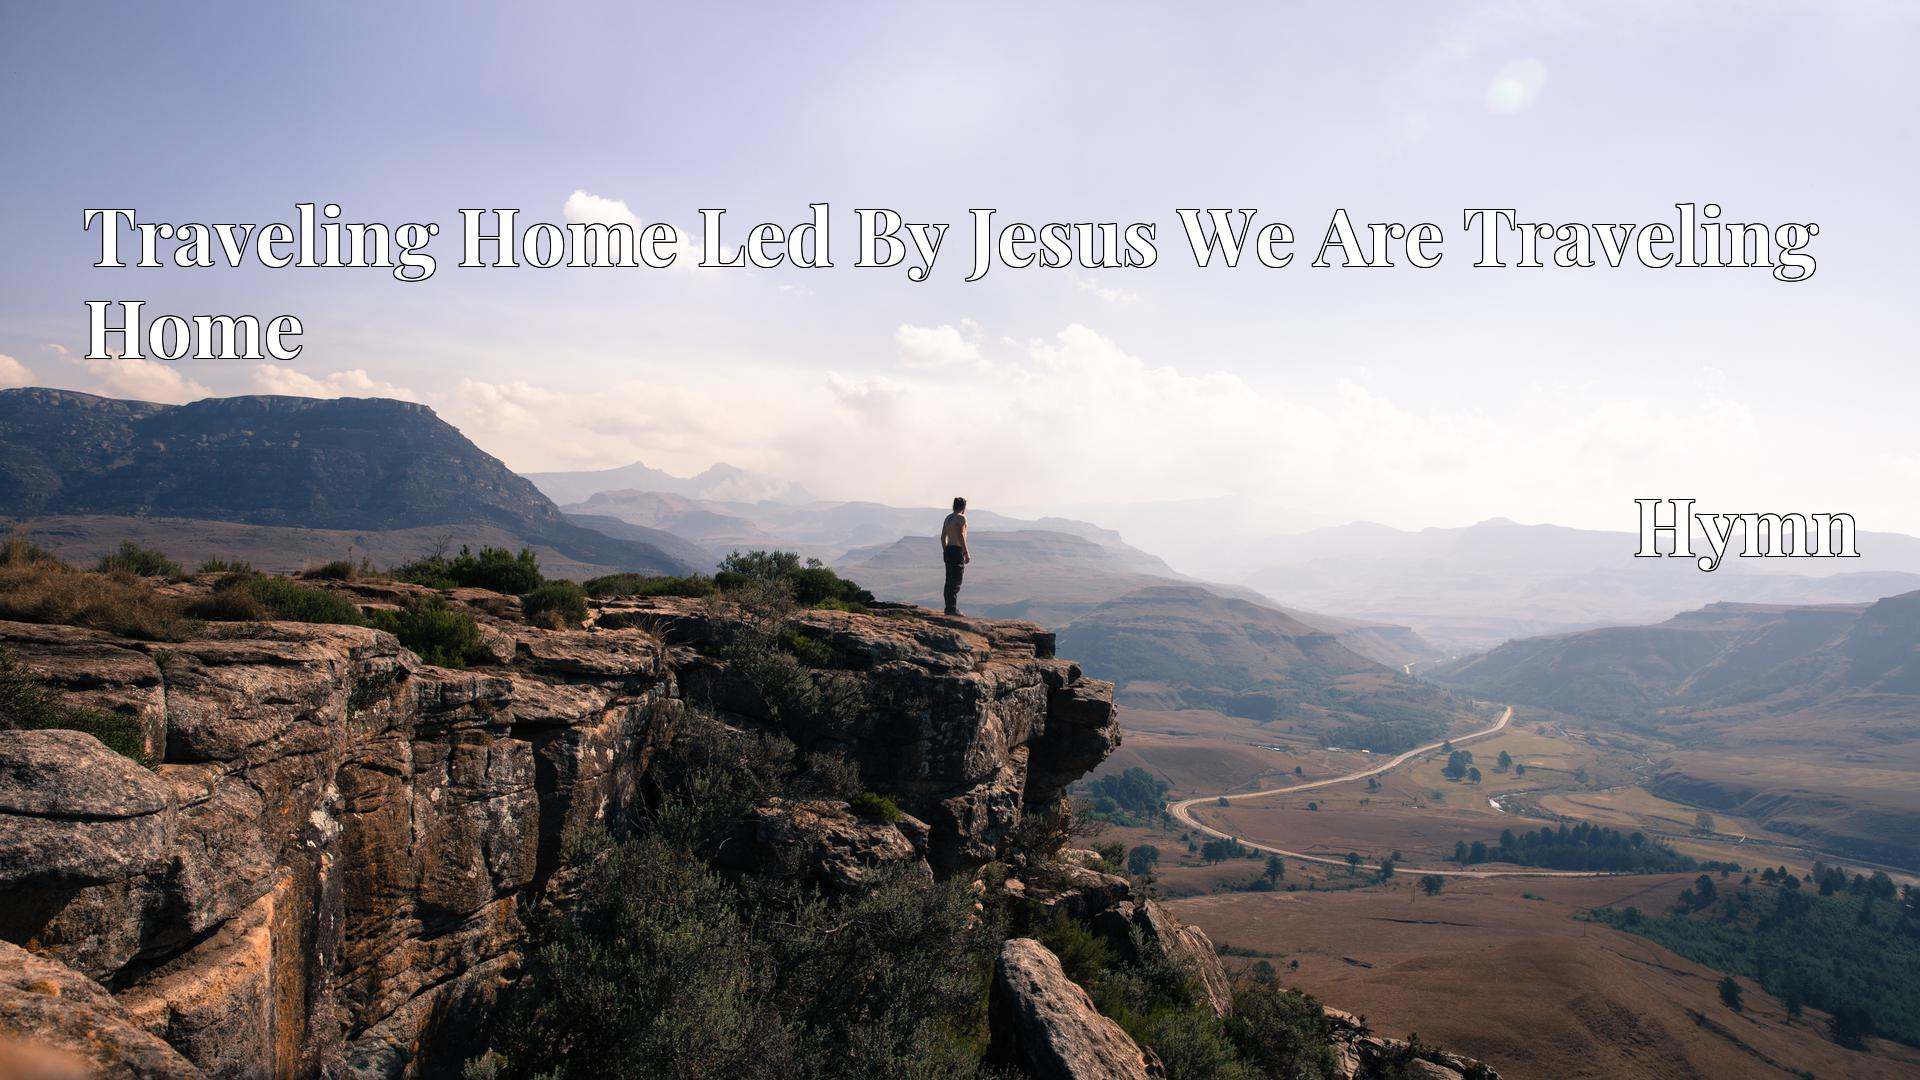 Traveling Home Led By Jesus We Are Traveling Home - Hymn